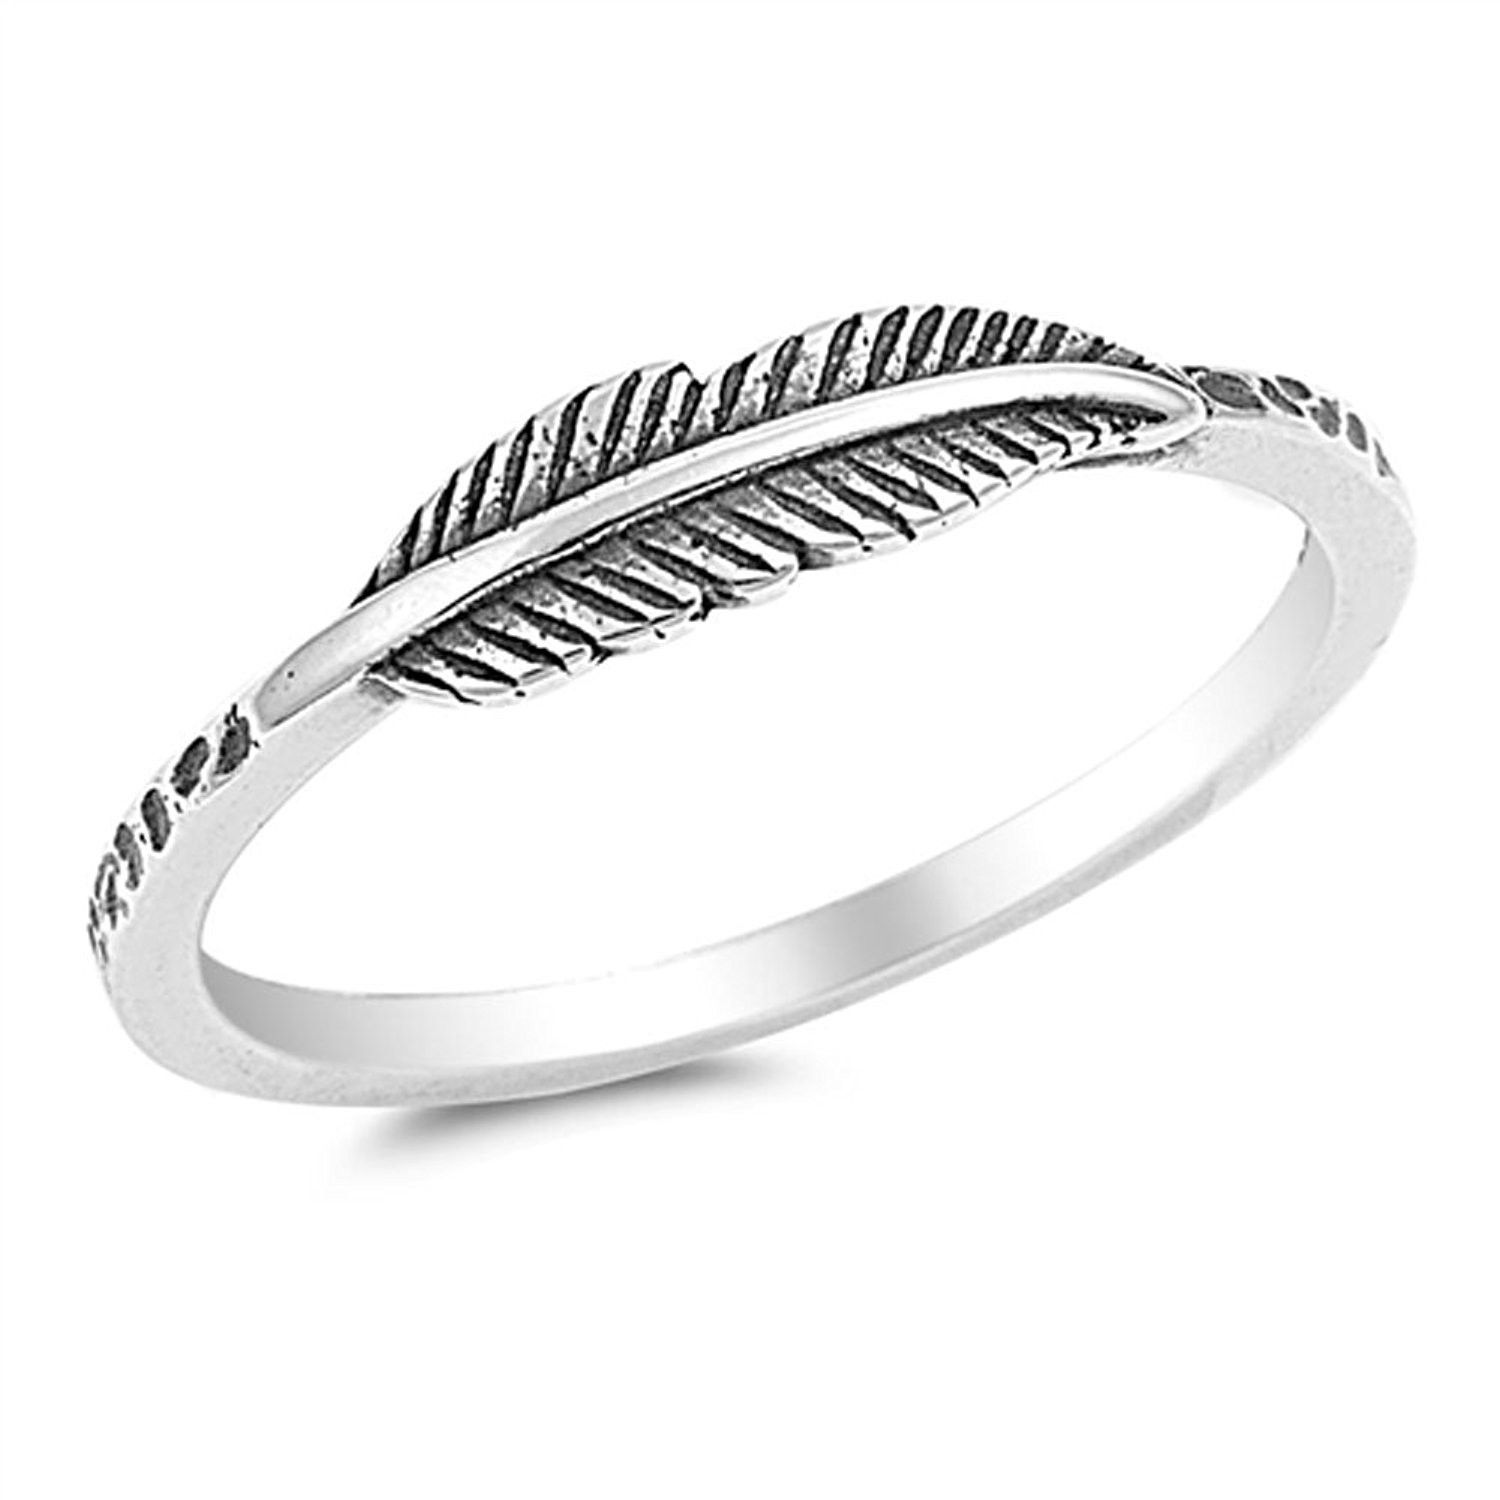 Benefiting The American Red Cross 925 Sterling Silver Ring Boruo Feather Ring Size 4-12